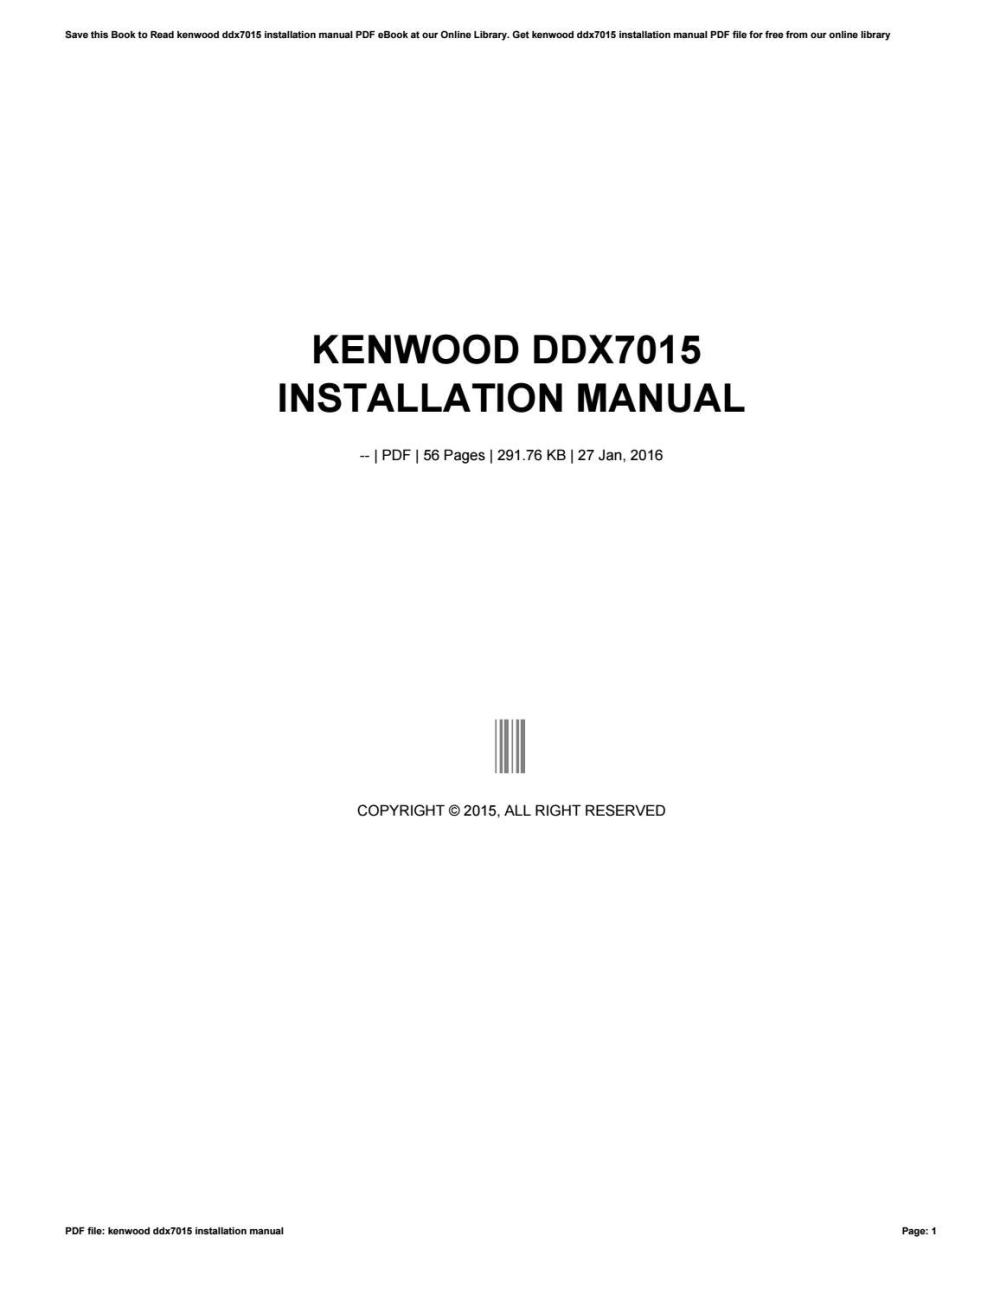 medium resolution of kenwood ddx7015 installation manual by mailfs108 issuu